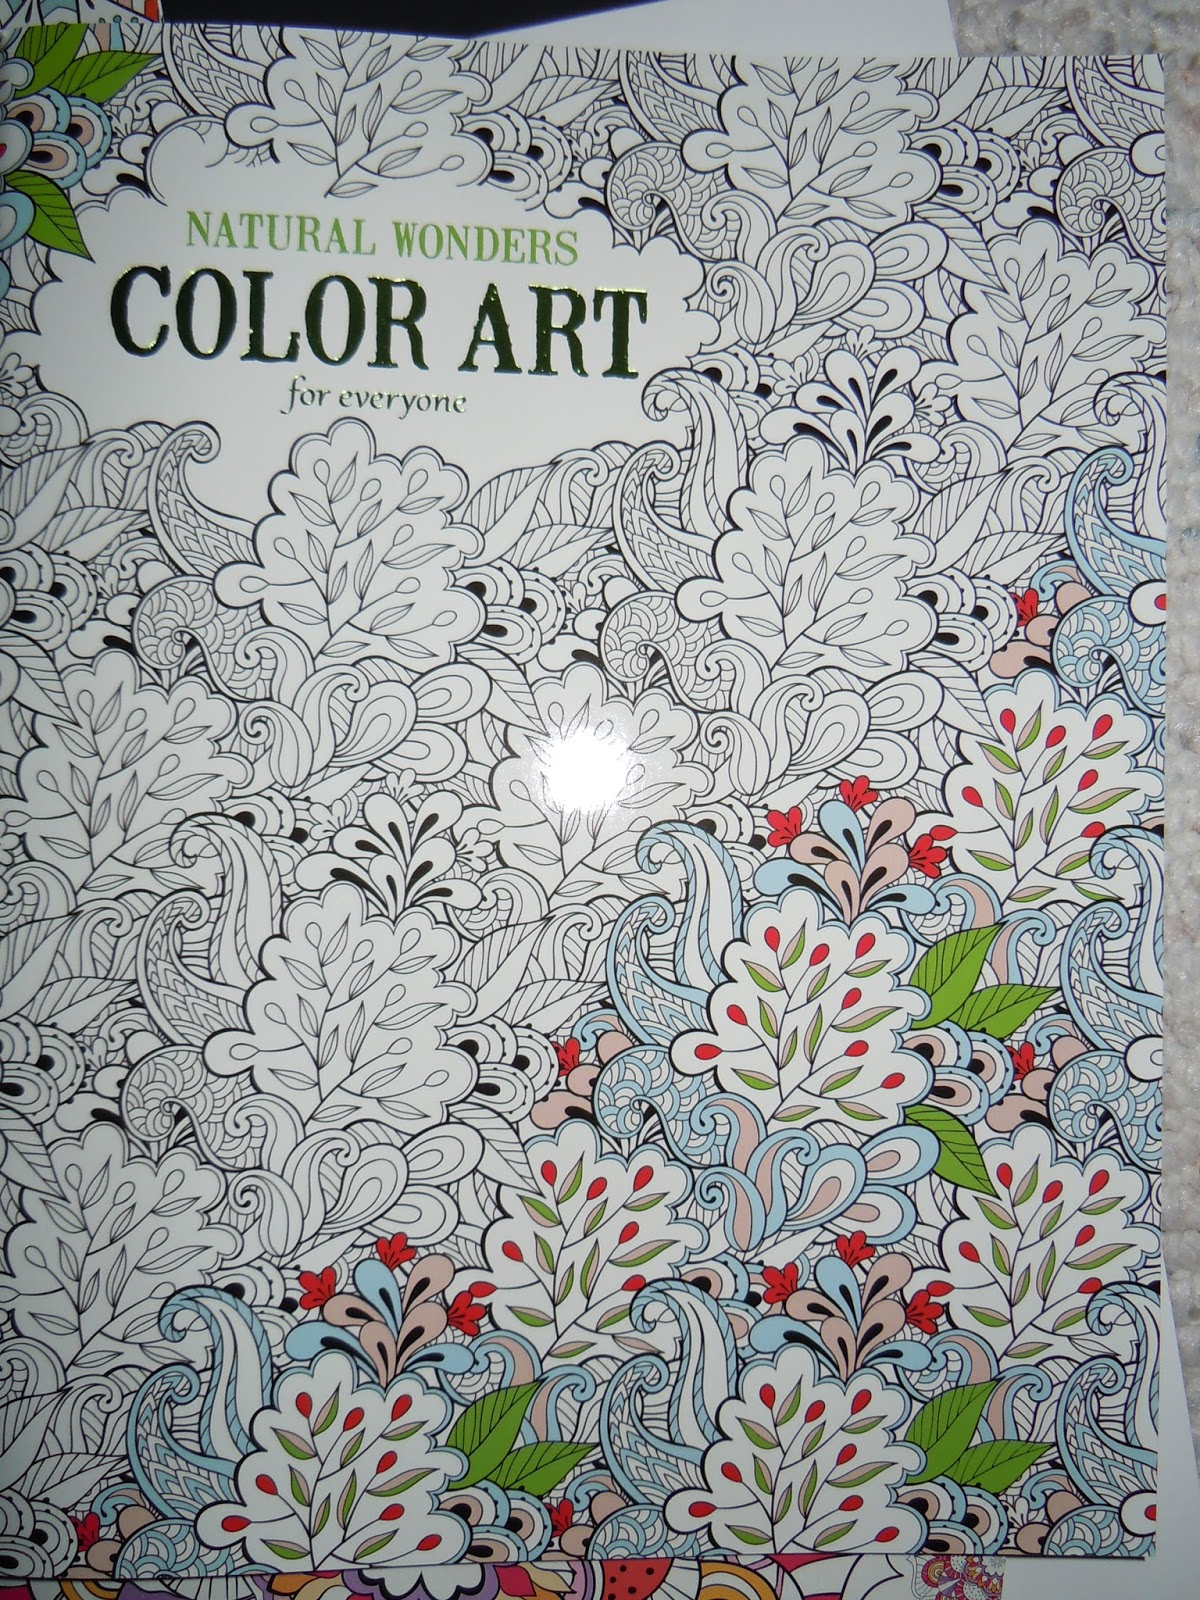 Color art floral wonders - My First Thought When I Received The Coloring Books Is How Great This Would Be When I Sit With My Grandkids And They Are Coloring In Their Coloring Books